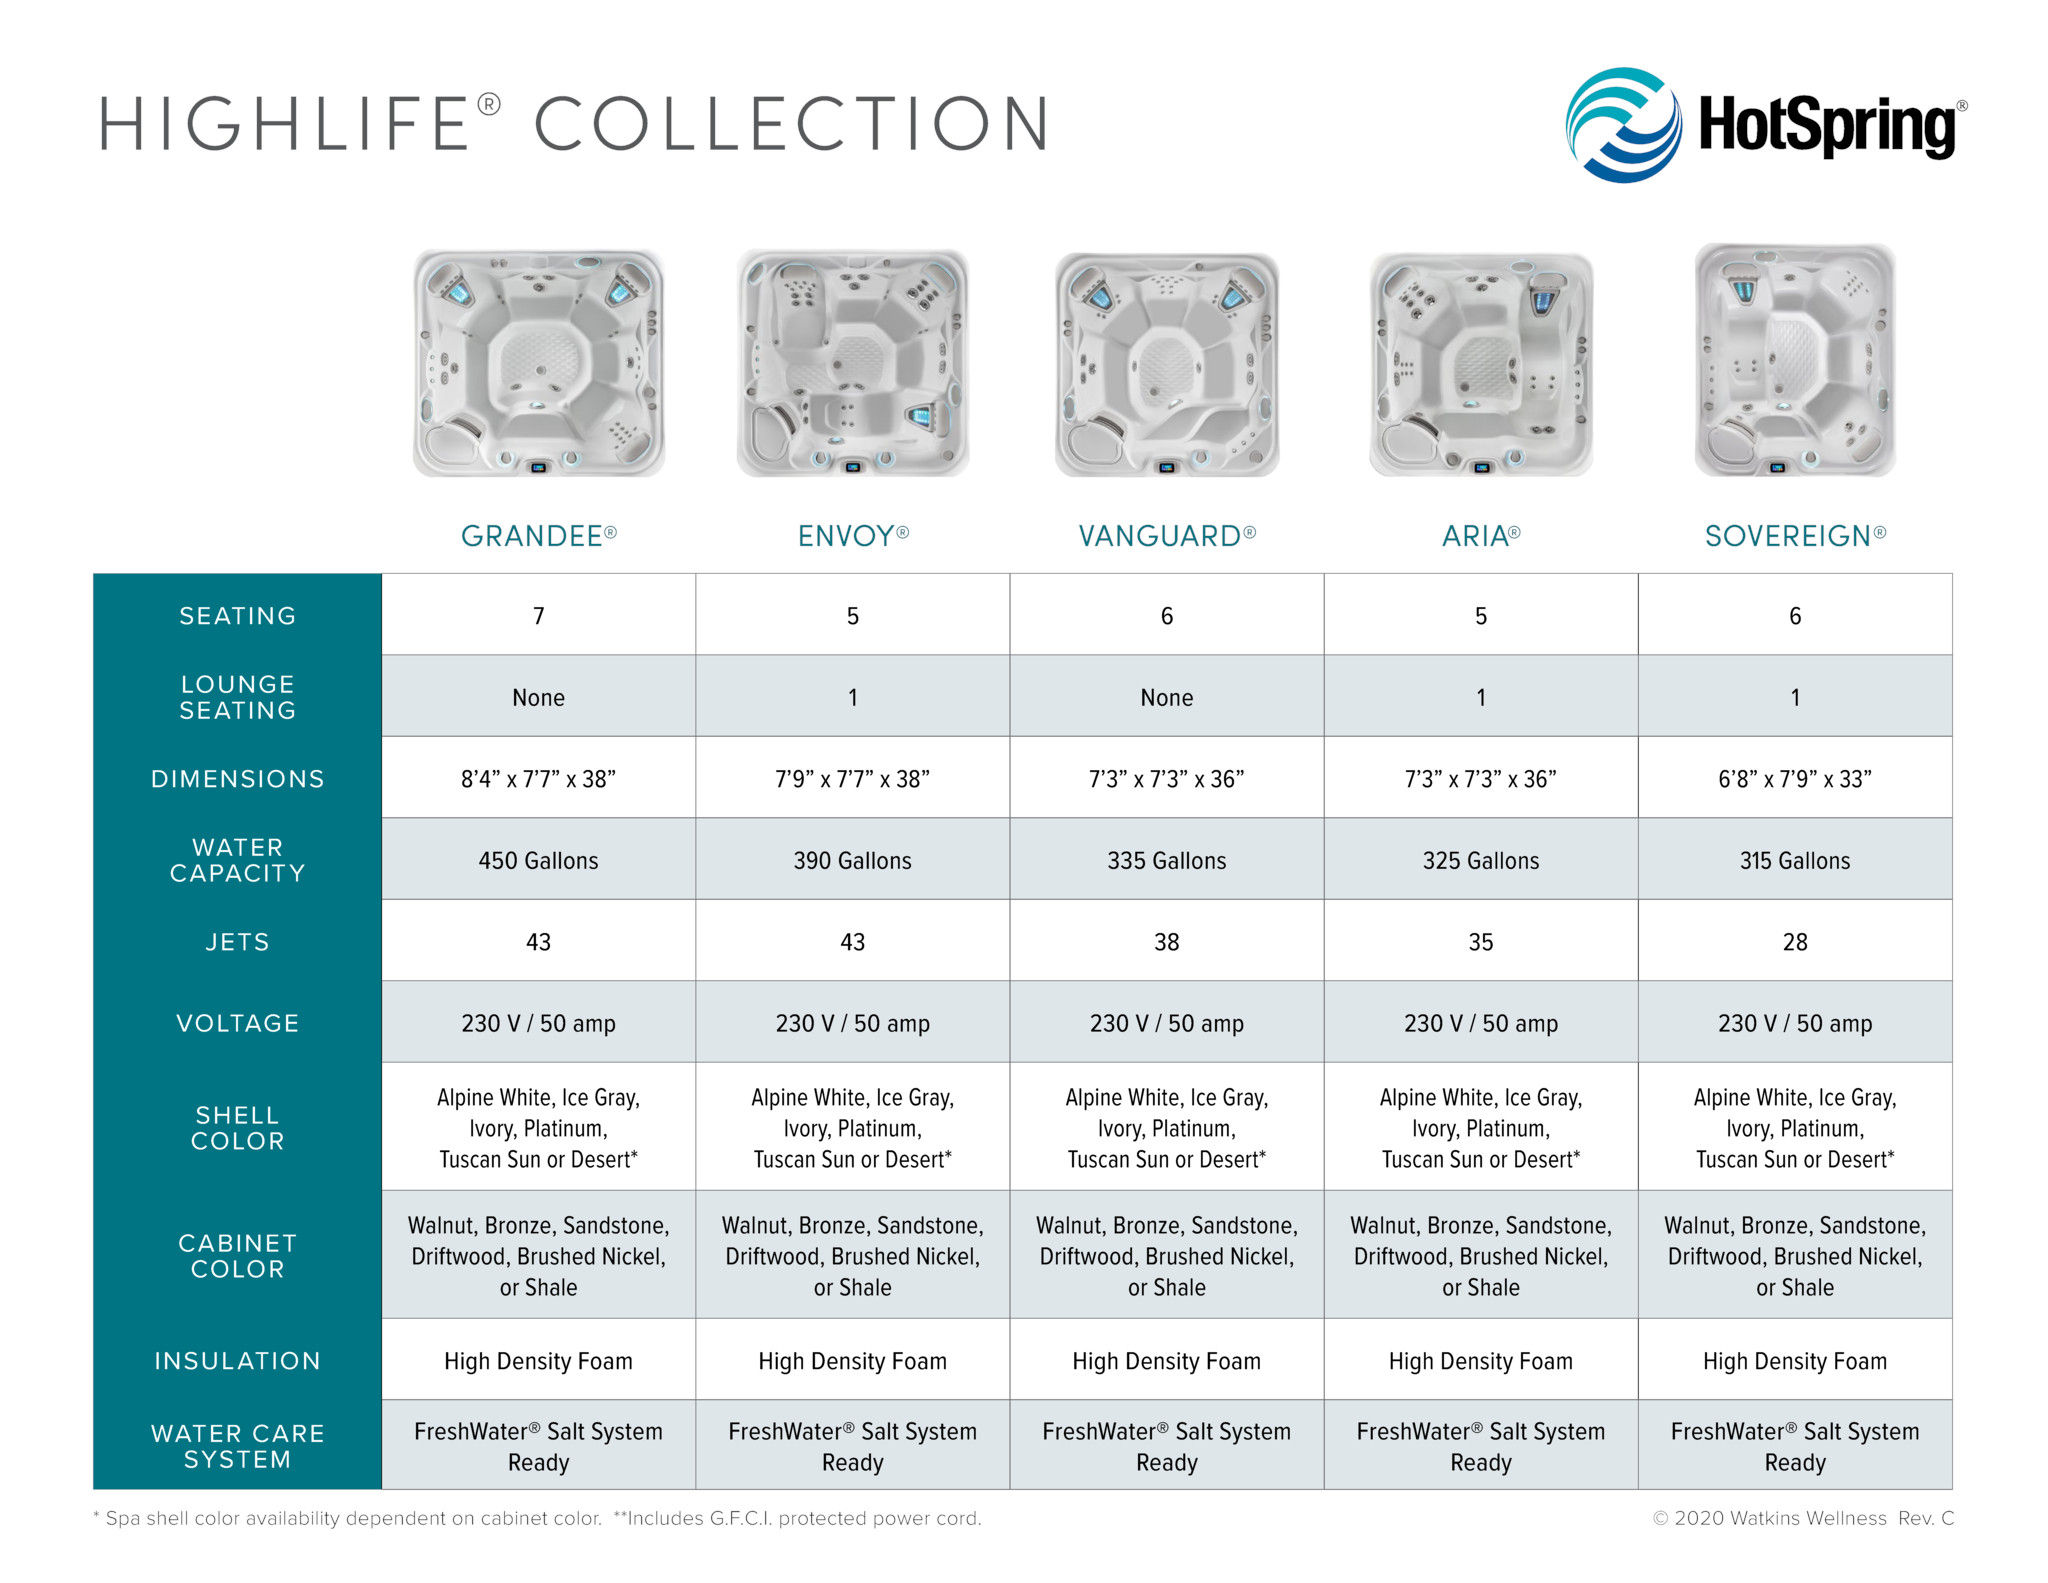 2020 Hot Spring Highlife Collection Comparison Chart1